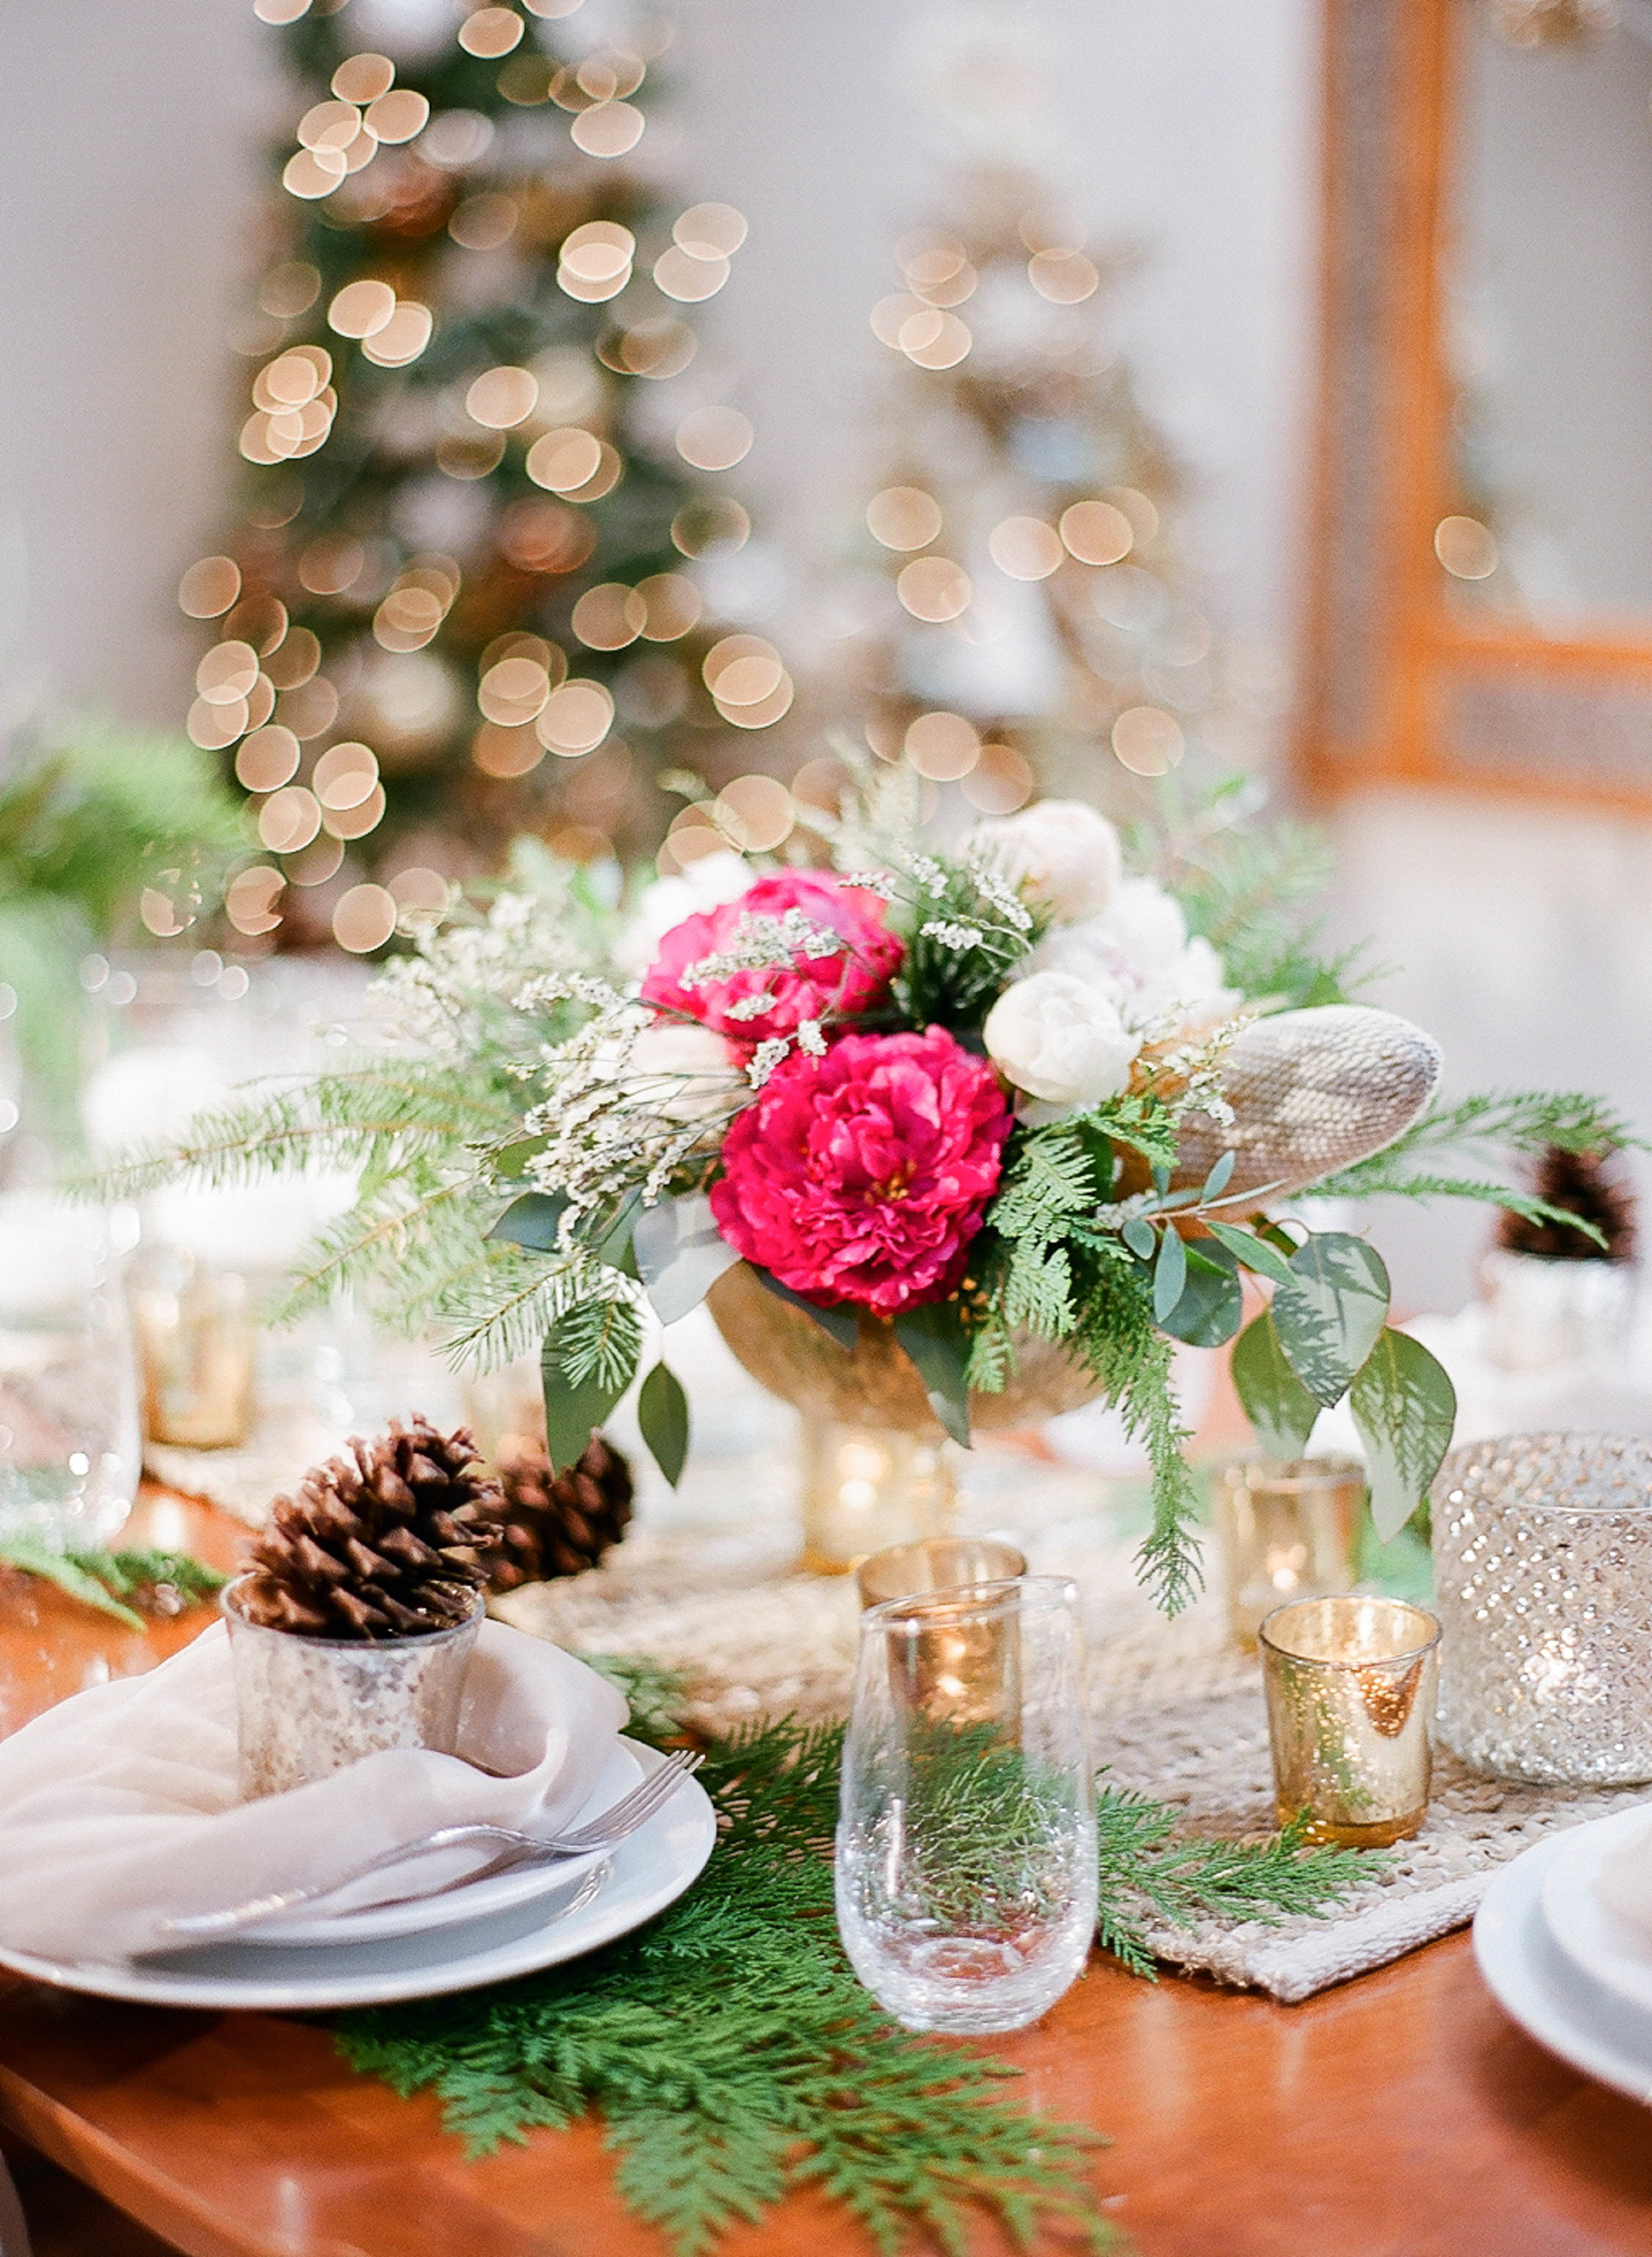 PassionRootsChristmasTablescape|AshleyGoodwinPhotography-2.jpg